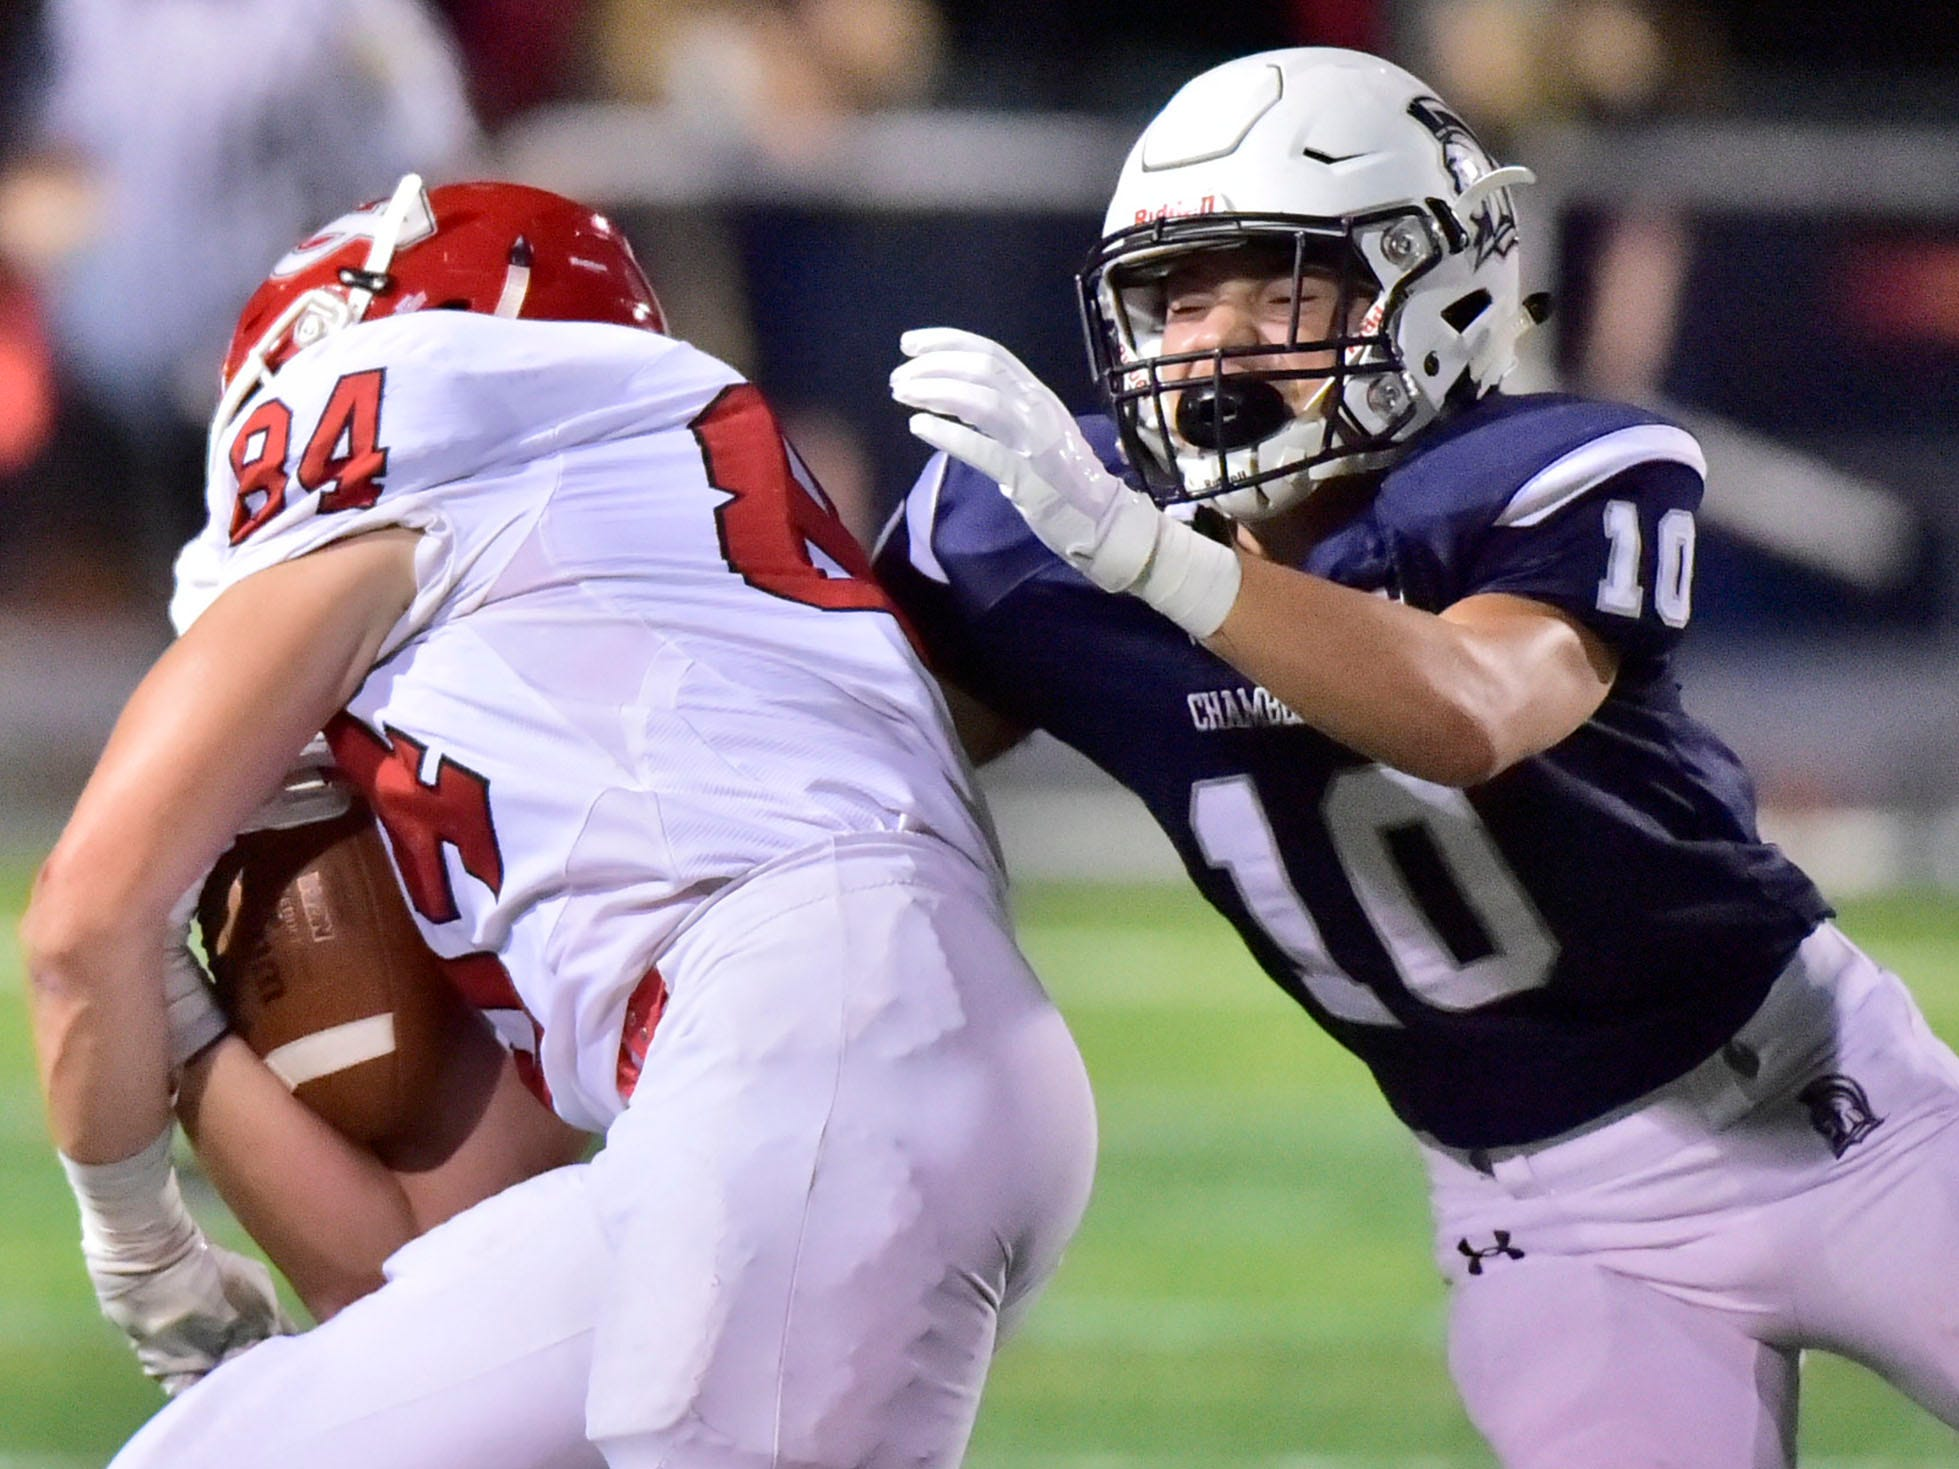 Brady Hughes (10) of Chambersburg tackles Stone Huffman of CV. Chambersburg Trojans are 5-1 after a homecoming victory over Cumberland Valley 28-14 in PIAA football on Friday, Sept. 28, 2018.